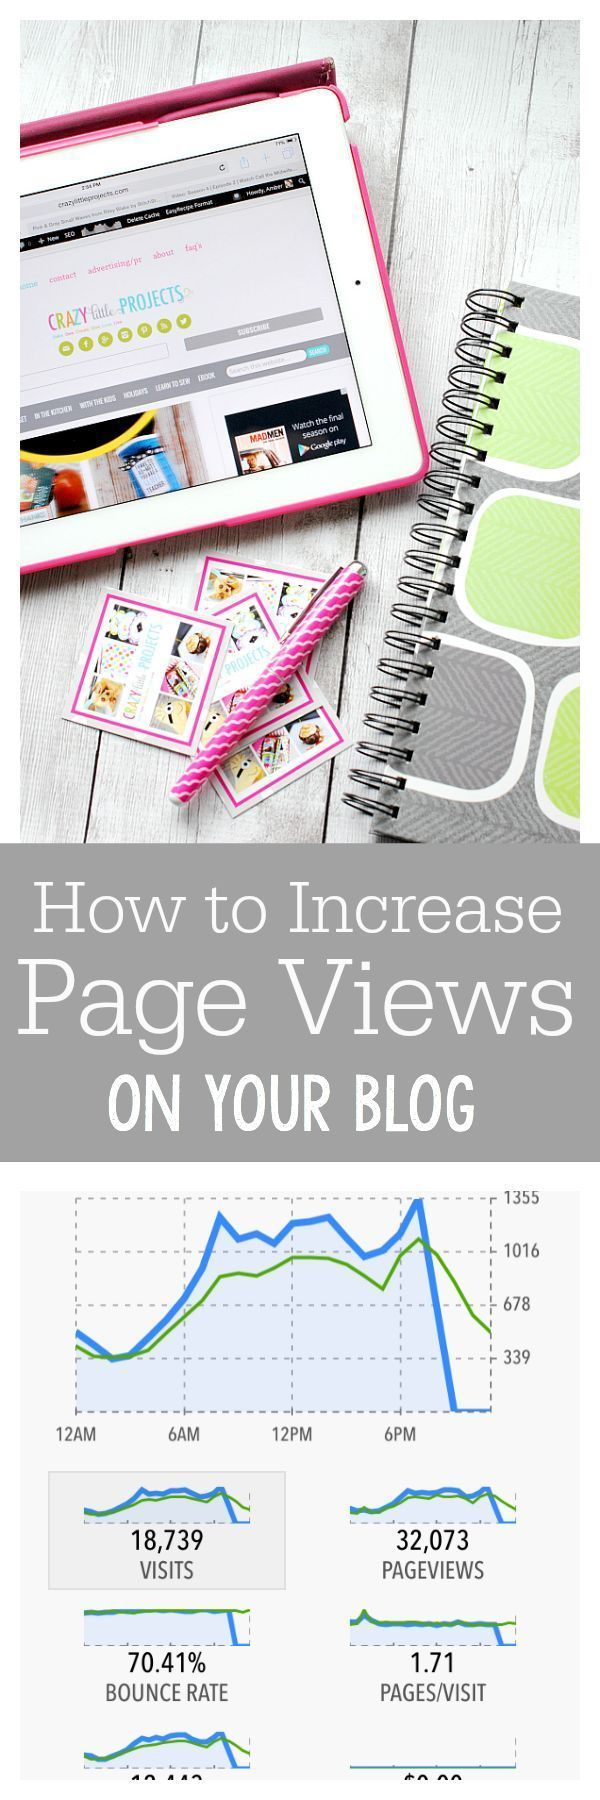 Blog Tips: How to Increase Page Views | Crazy Little Projects #blog, #blogging, blogging, business, entrepreneur